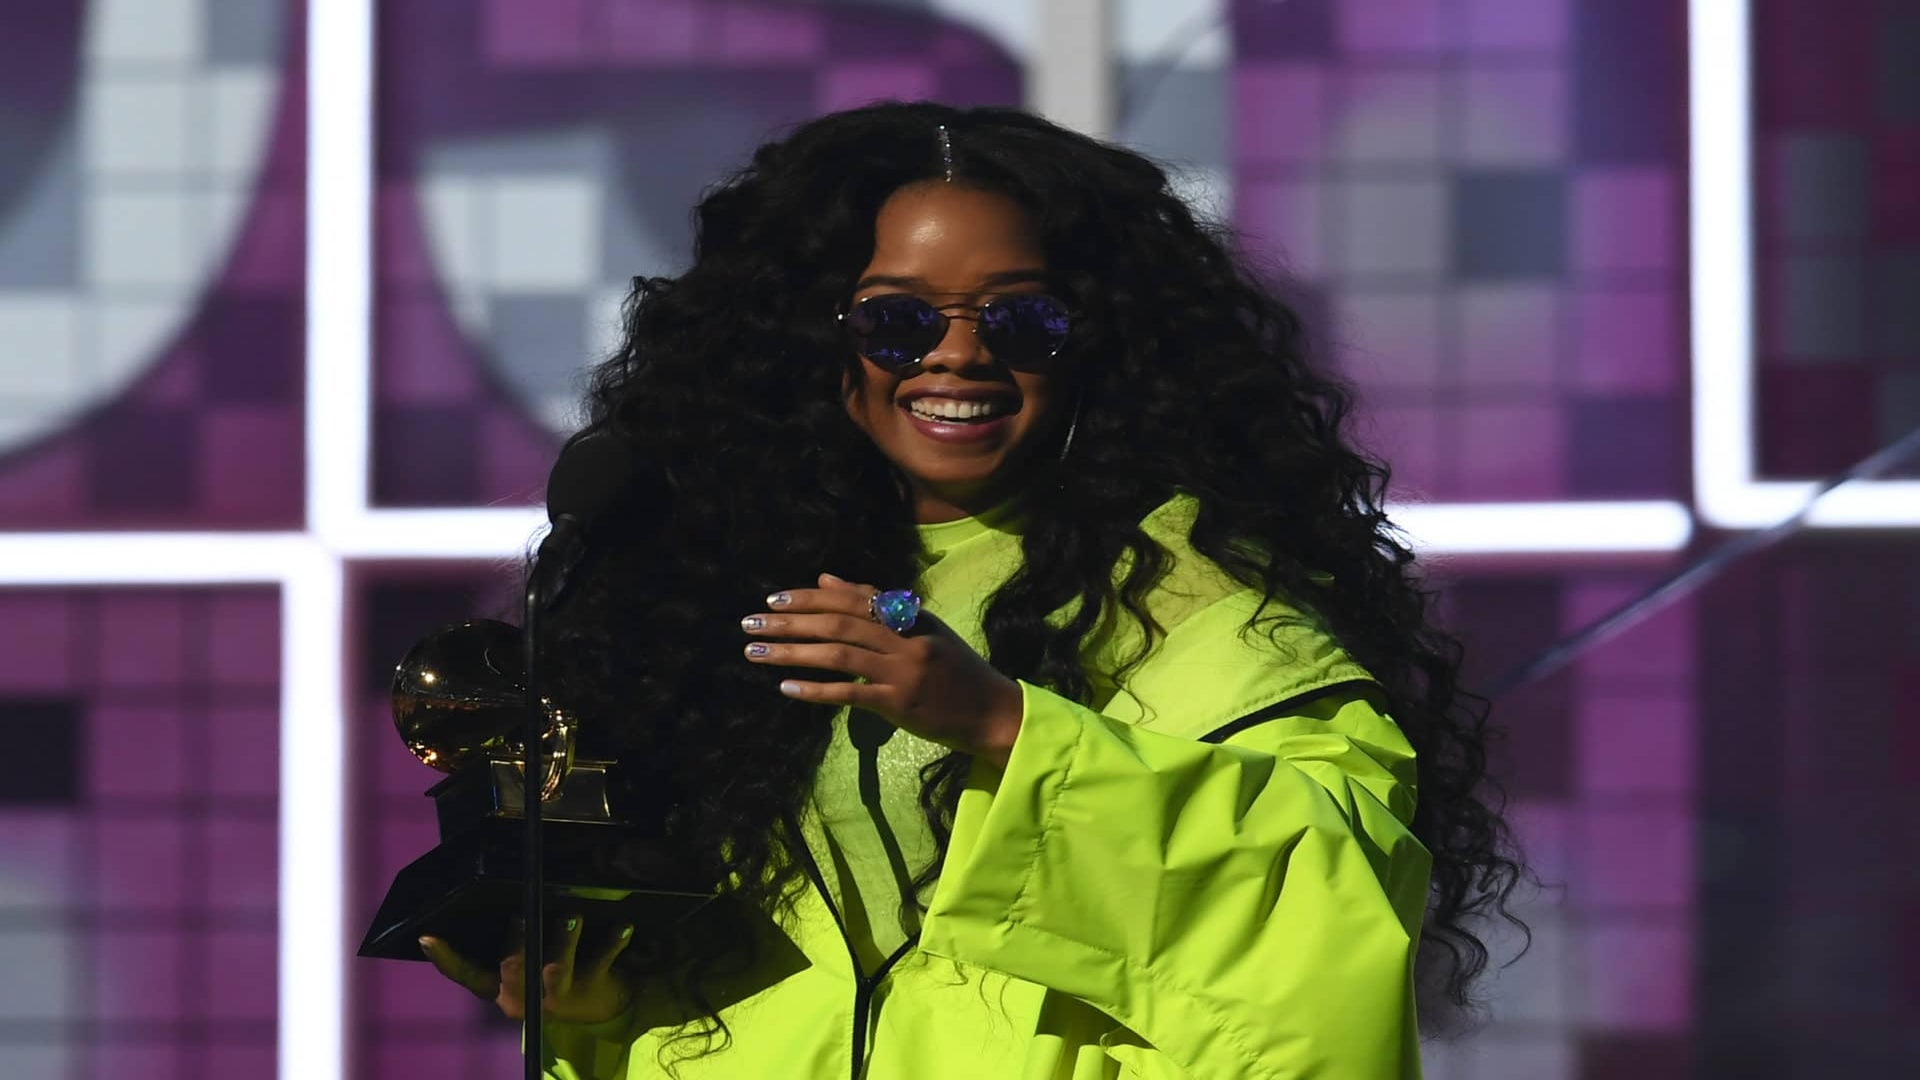 Watch Ella Mai Interrupt H.E.R. On The Grammy Red Carpet To Congratulate Her